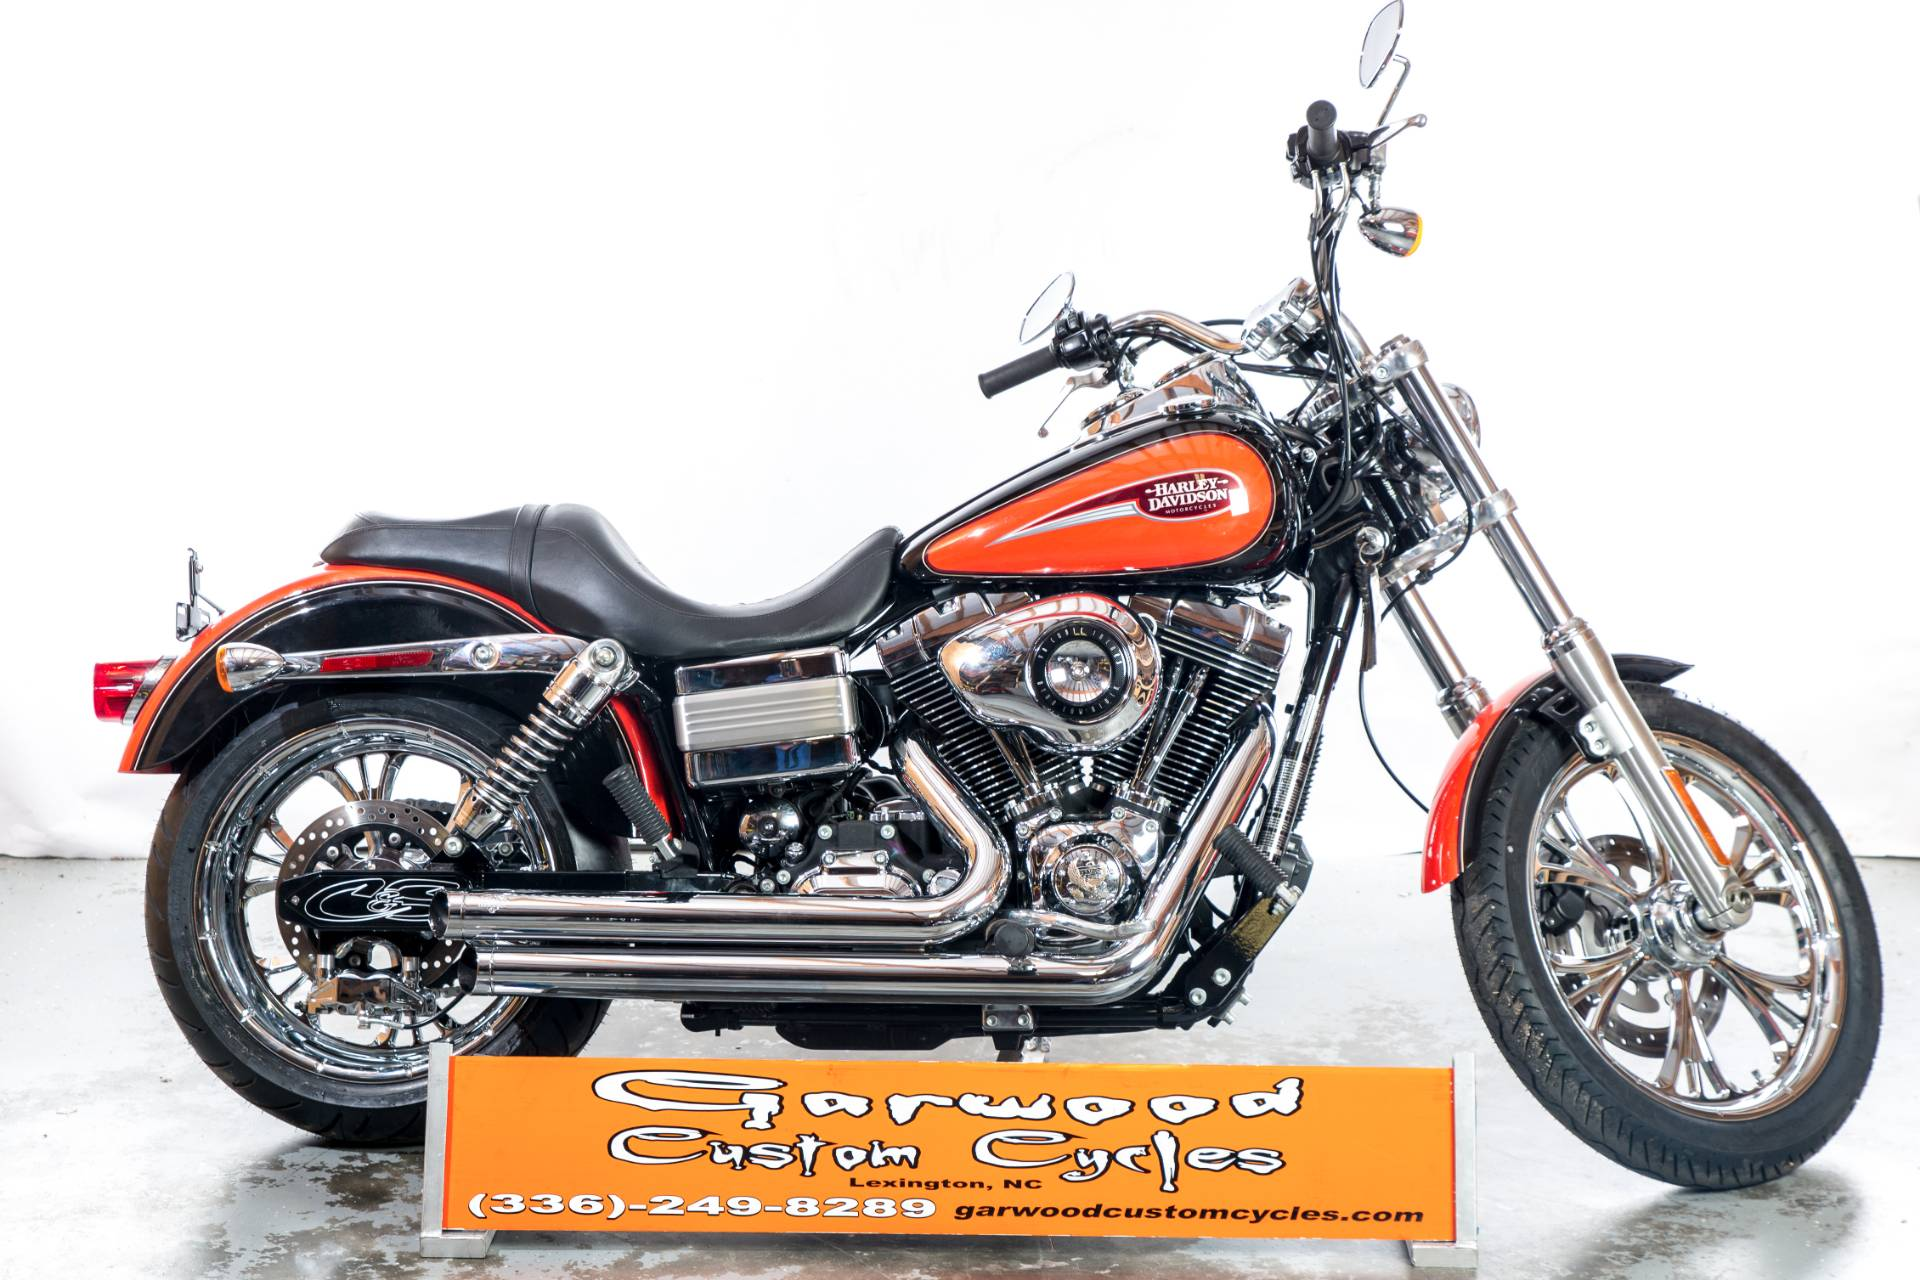 2008 Harley Davidson DYNA LOW RIDER FXDL in Lexington, North Carolina - Photo 1